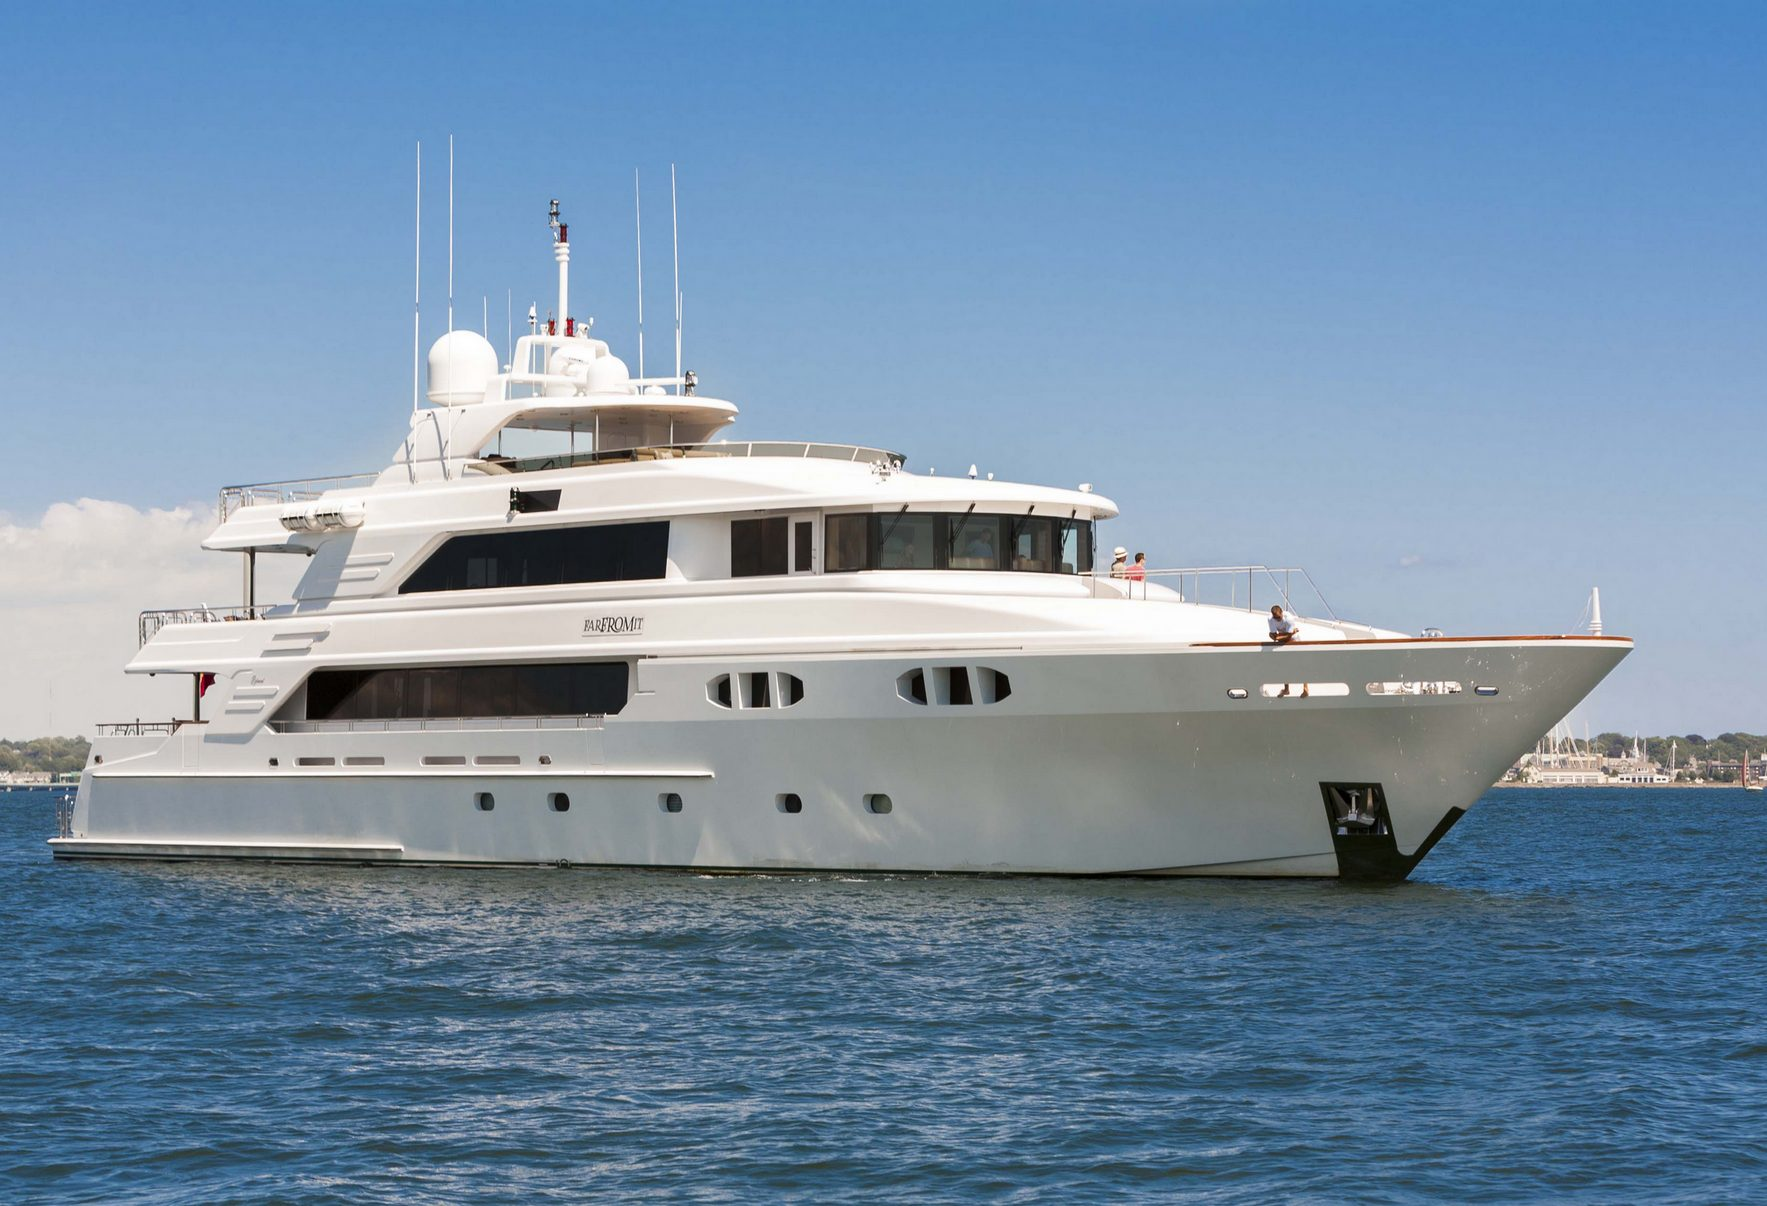 Charter motor yacht FAR FROM IT in the Caribbean - Luxury Charter Group